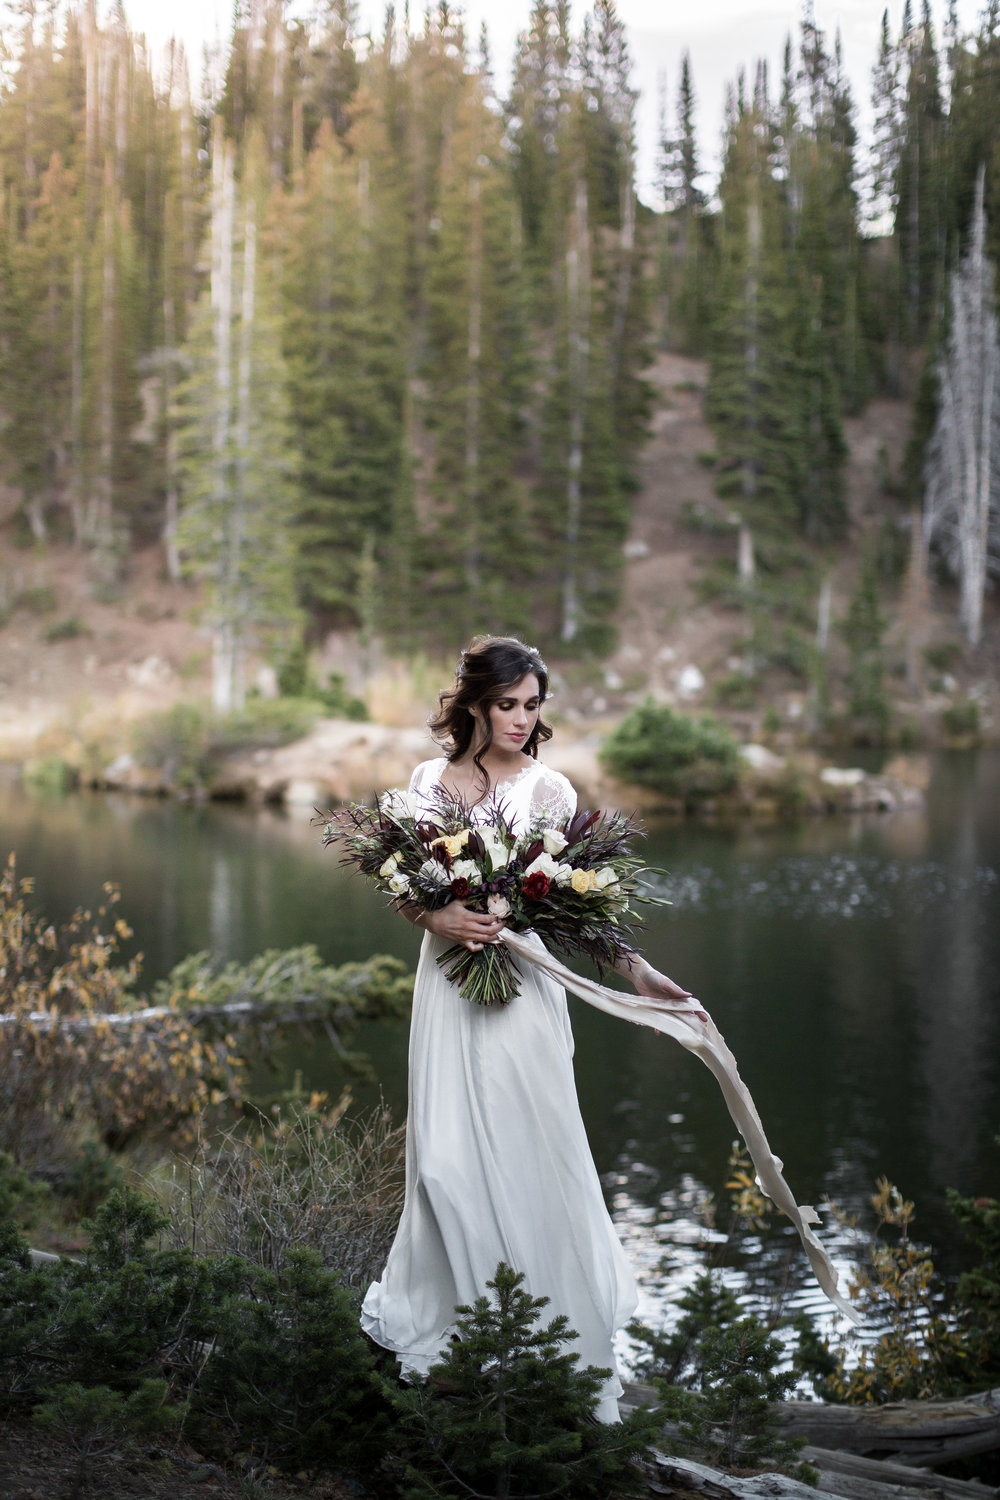 UtahValleyBrideShootTR2016 (45 of 110).jpg